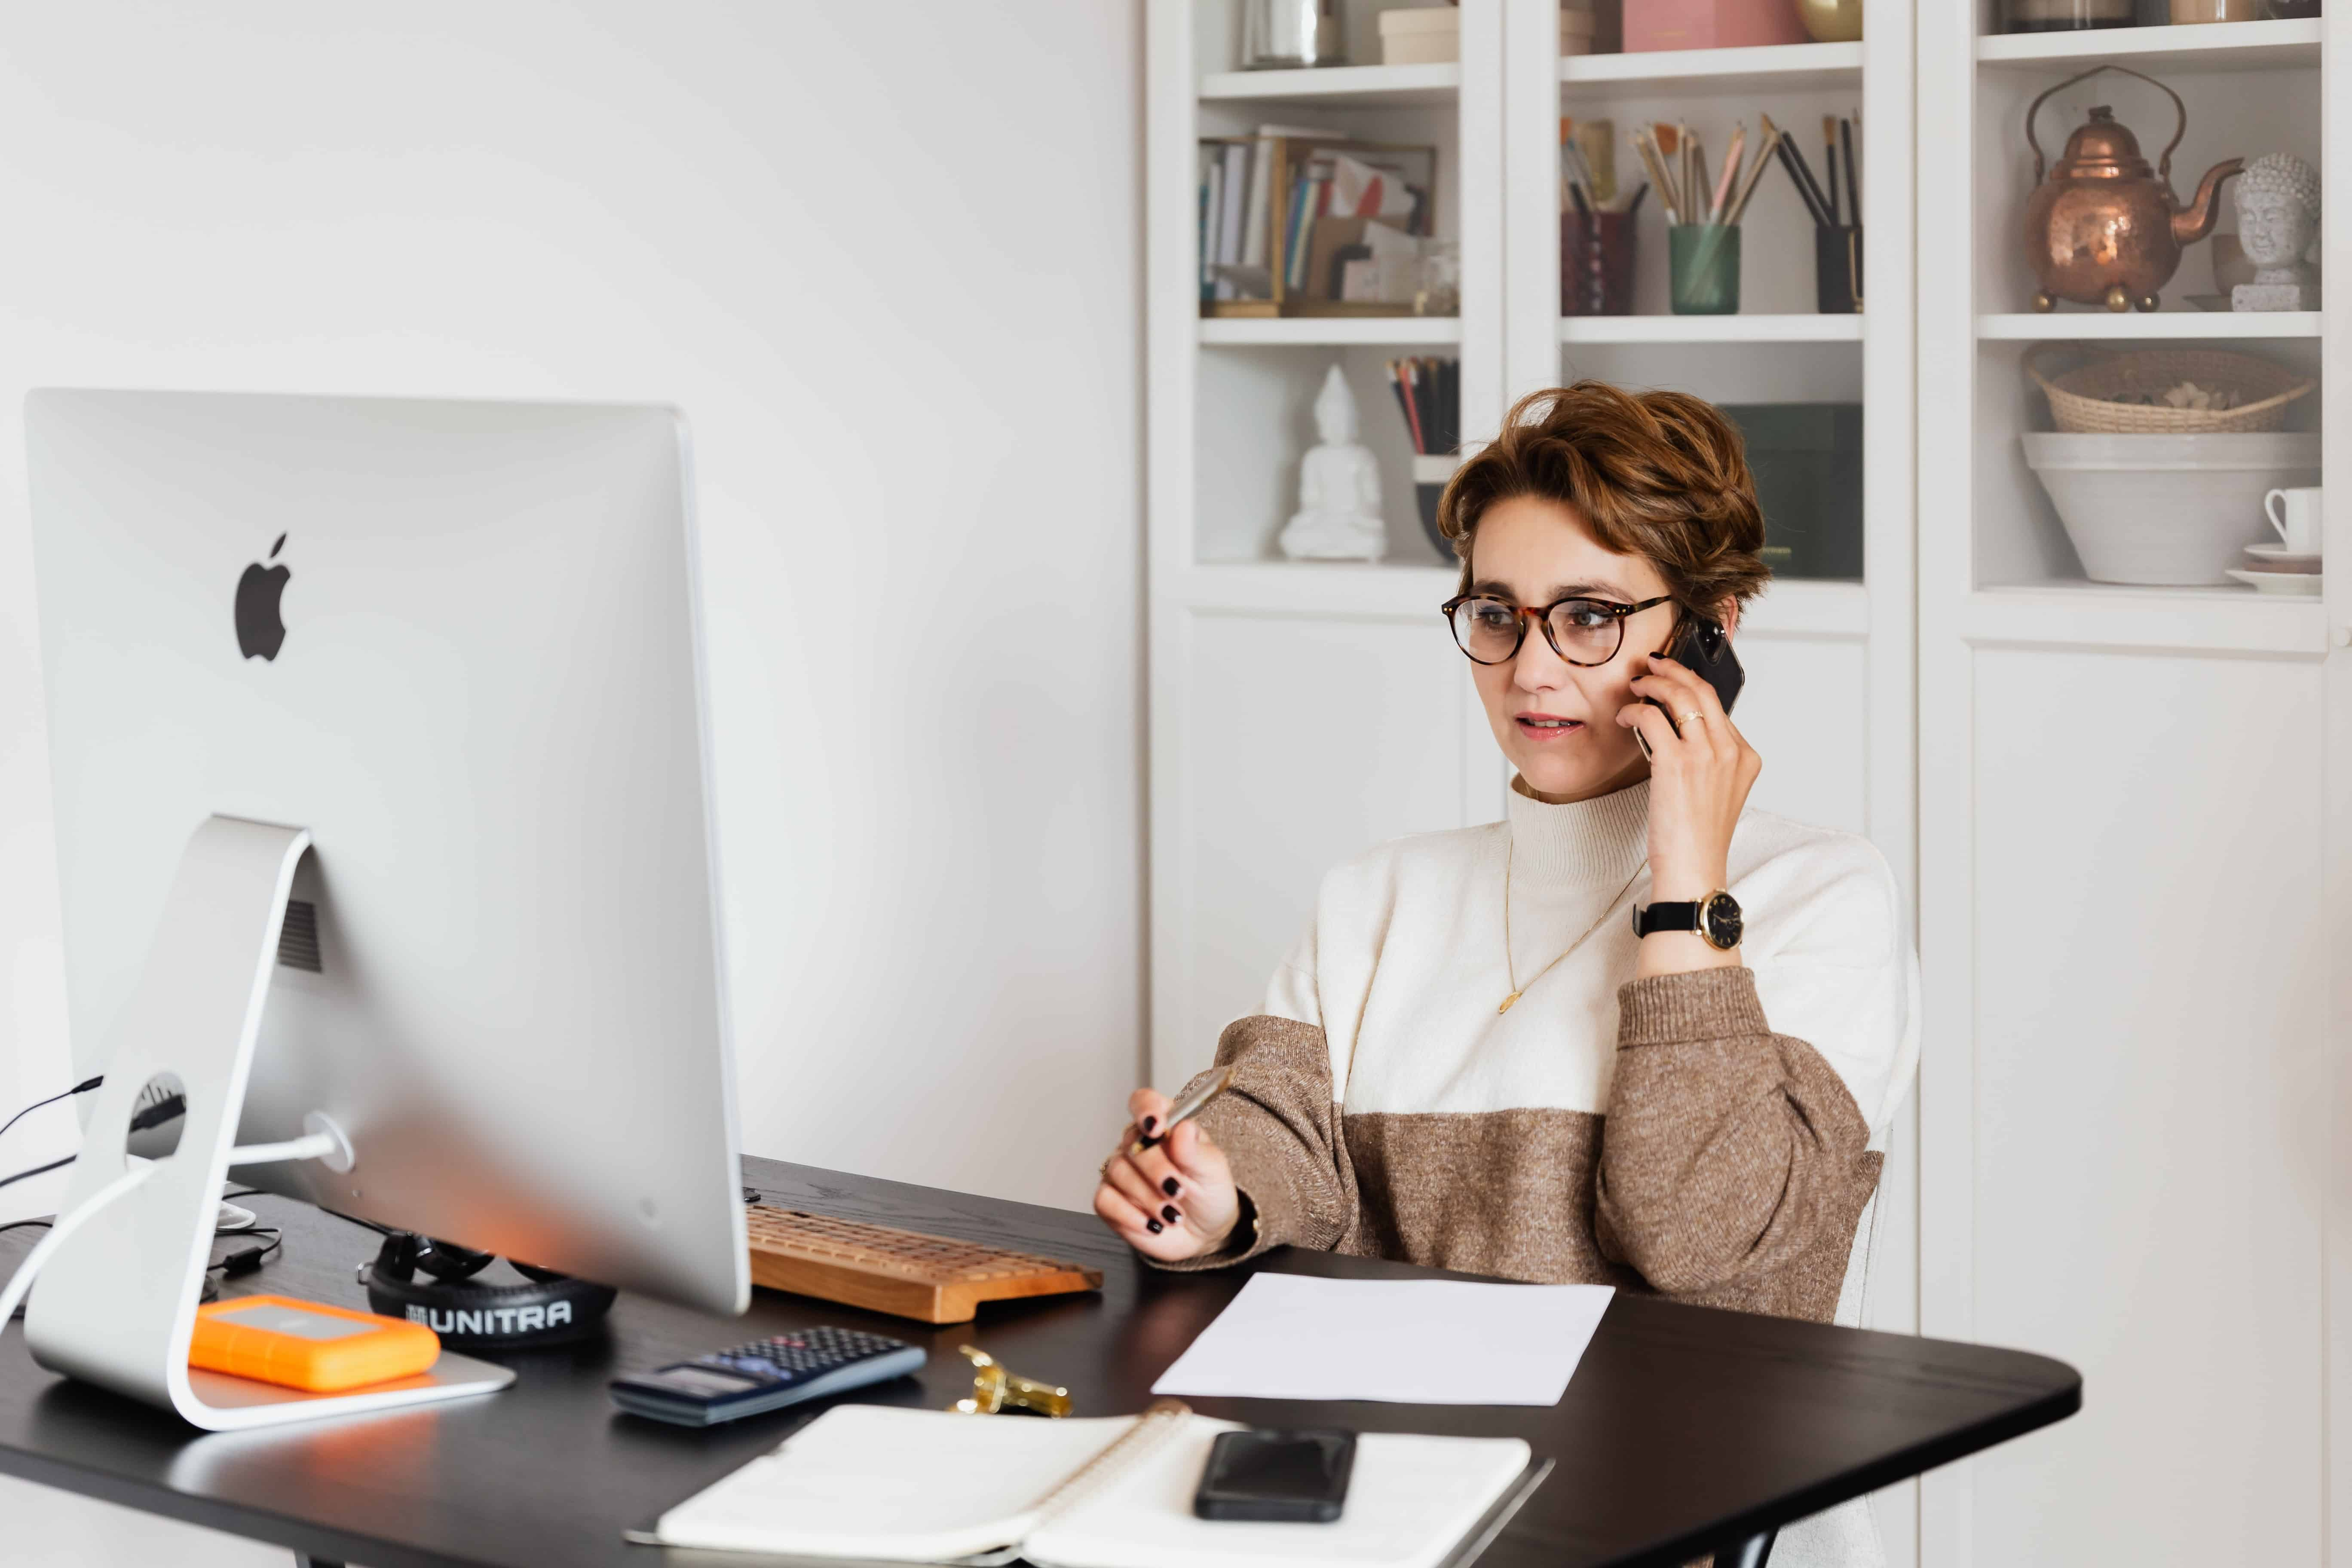 A woman using time management to prioritize work tasks.